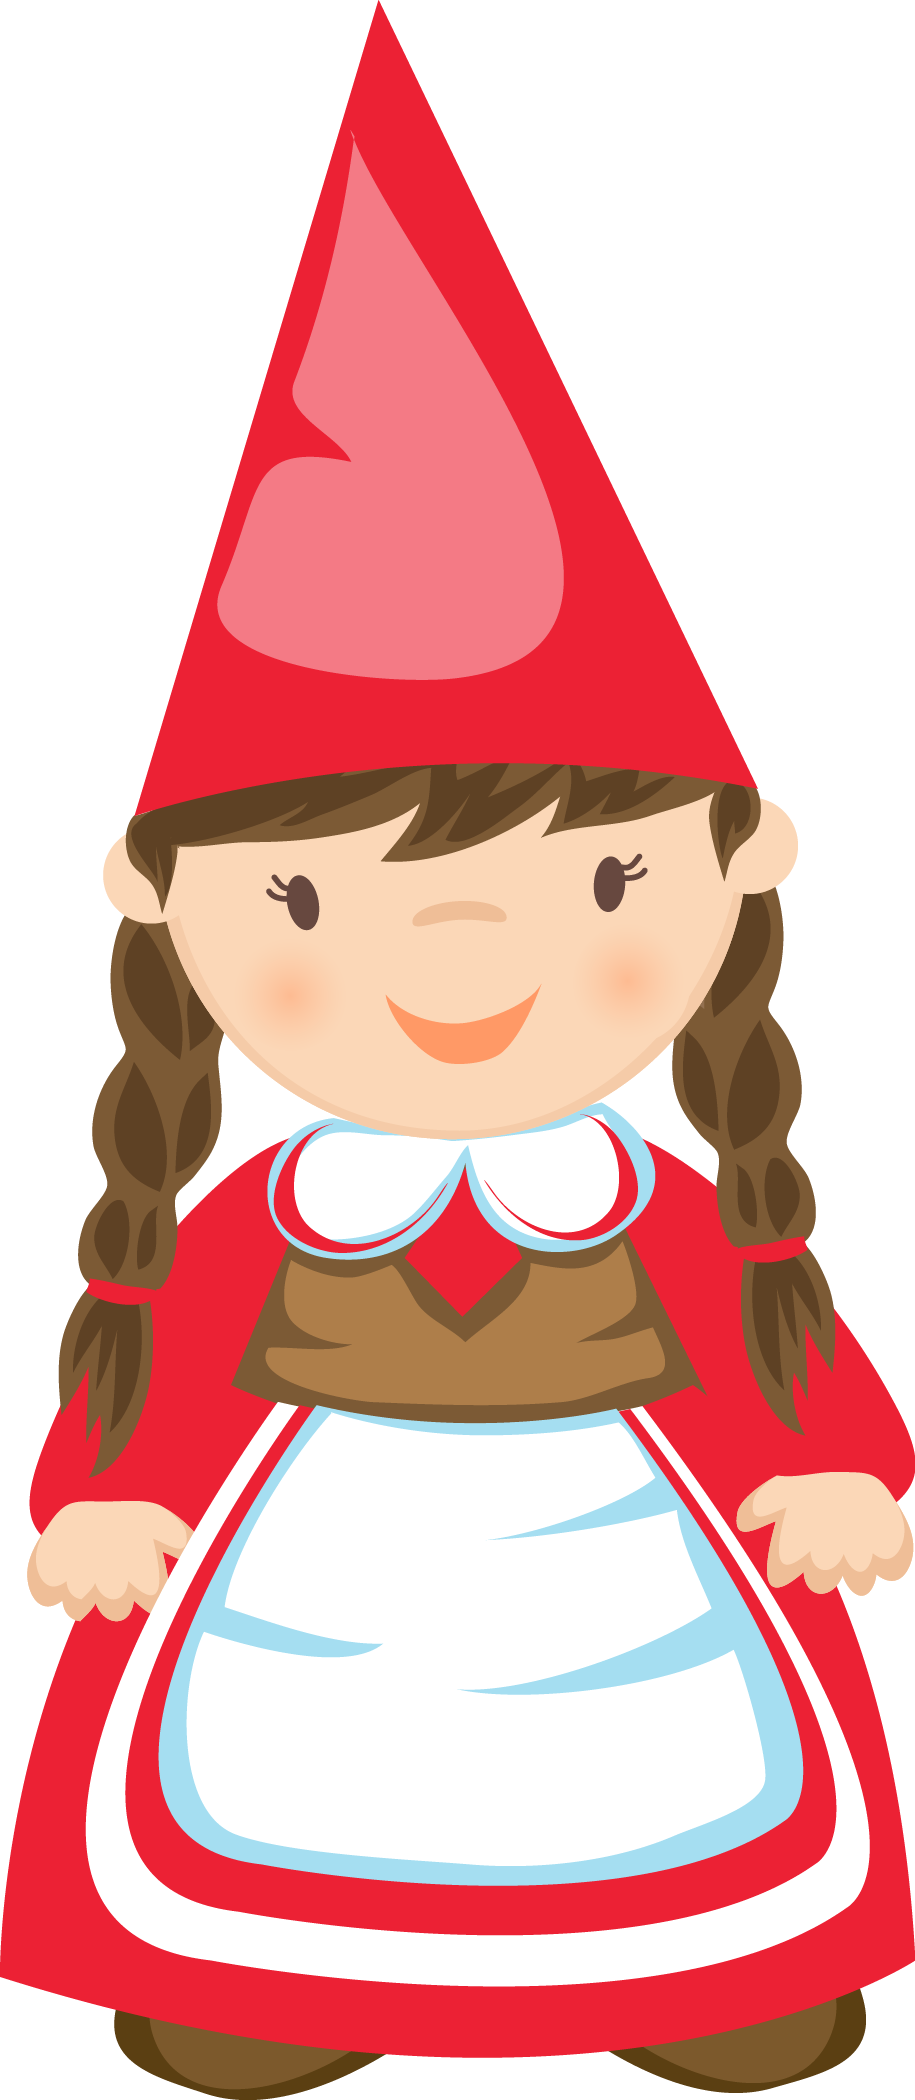 Gnomes clipart image royalty free library GIRL GNOME * | CLIP ART - GNOMES - CLIPART | Gnomes, Drawings, Girl ... image royalty free library